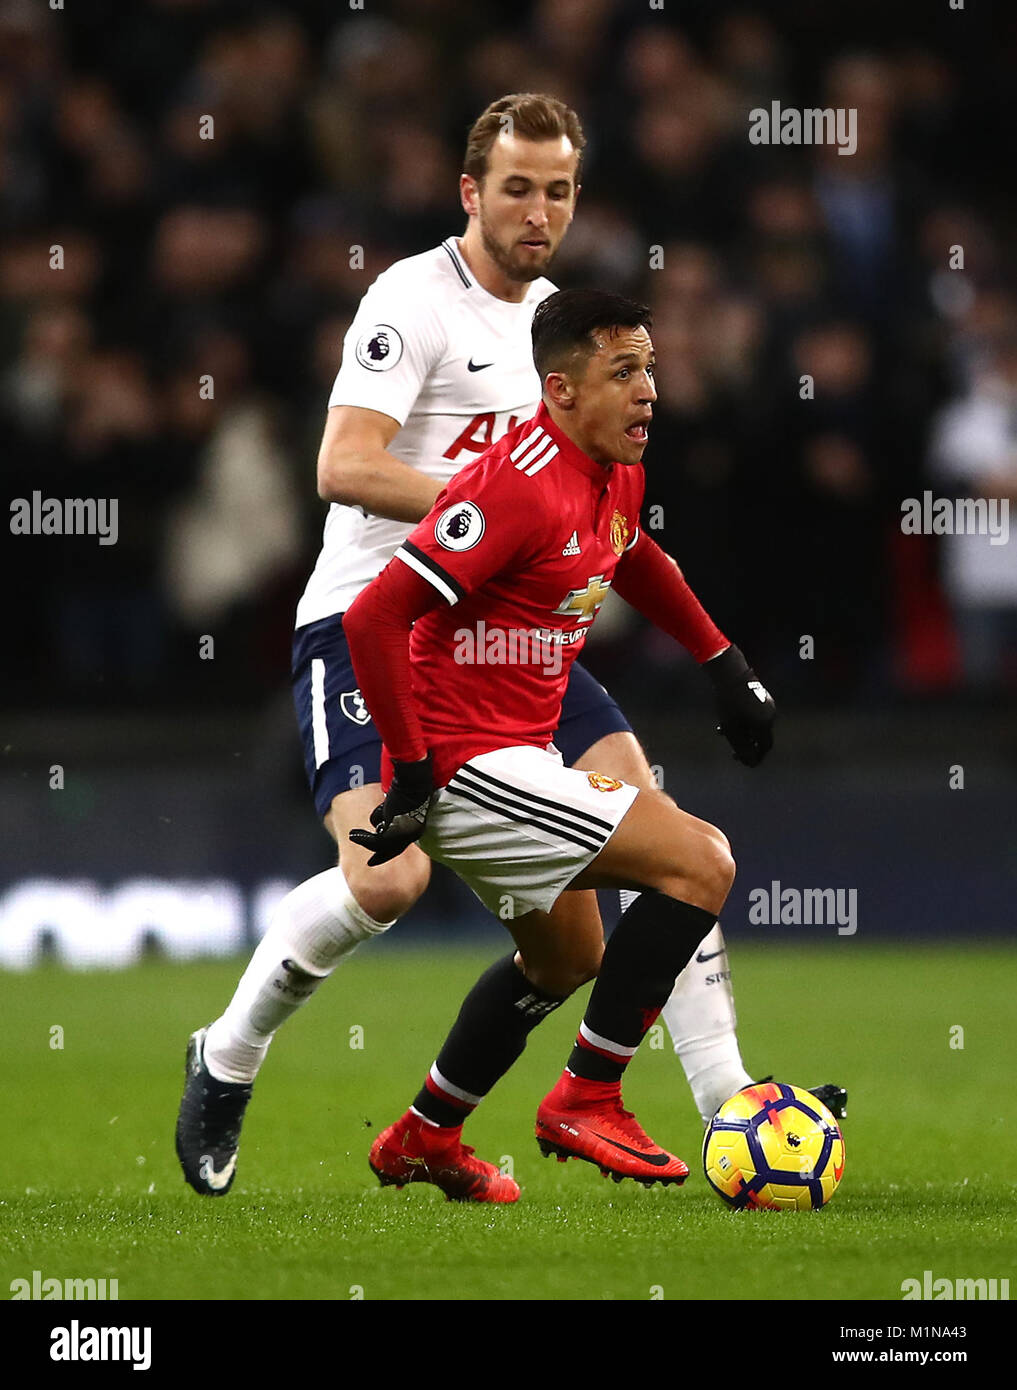 029f5628ddf8 Tottenham Hotspur s Harry Kane (left) and Manchester United s Alexis  Sanchez (right) battle